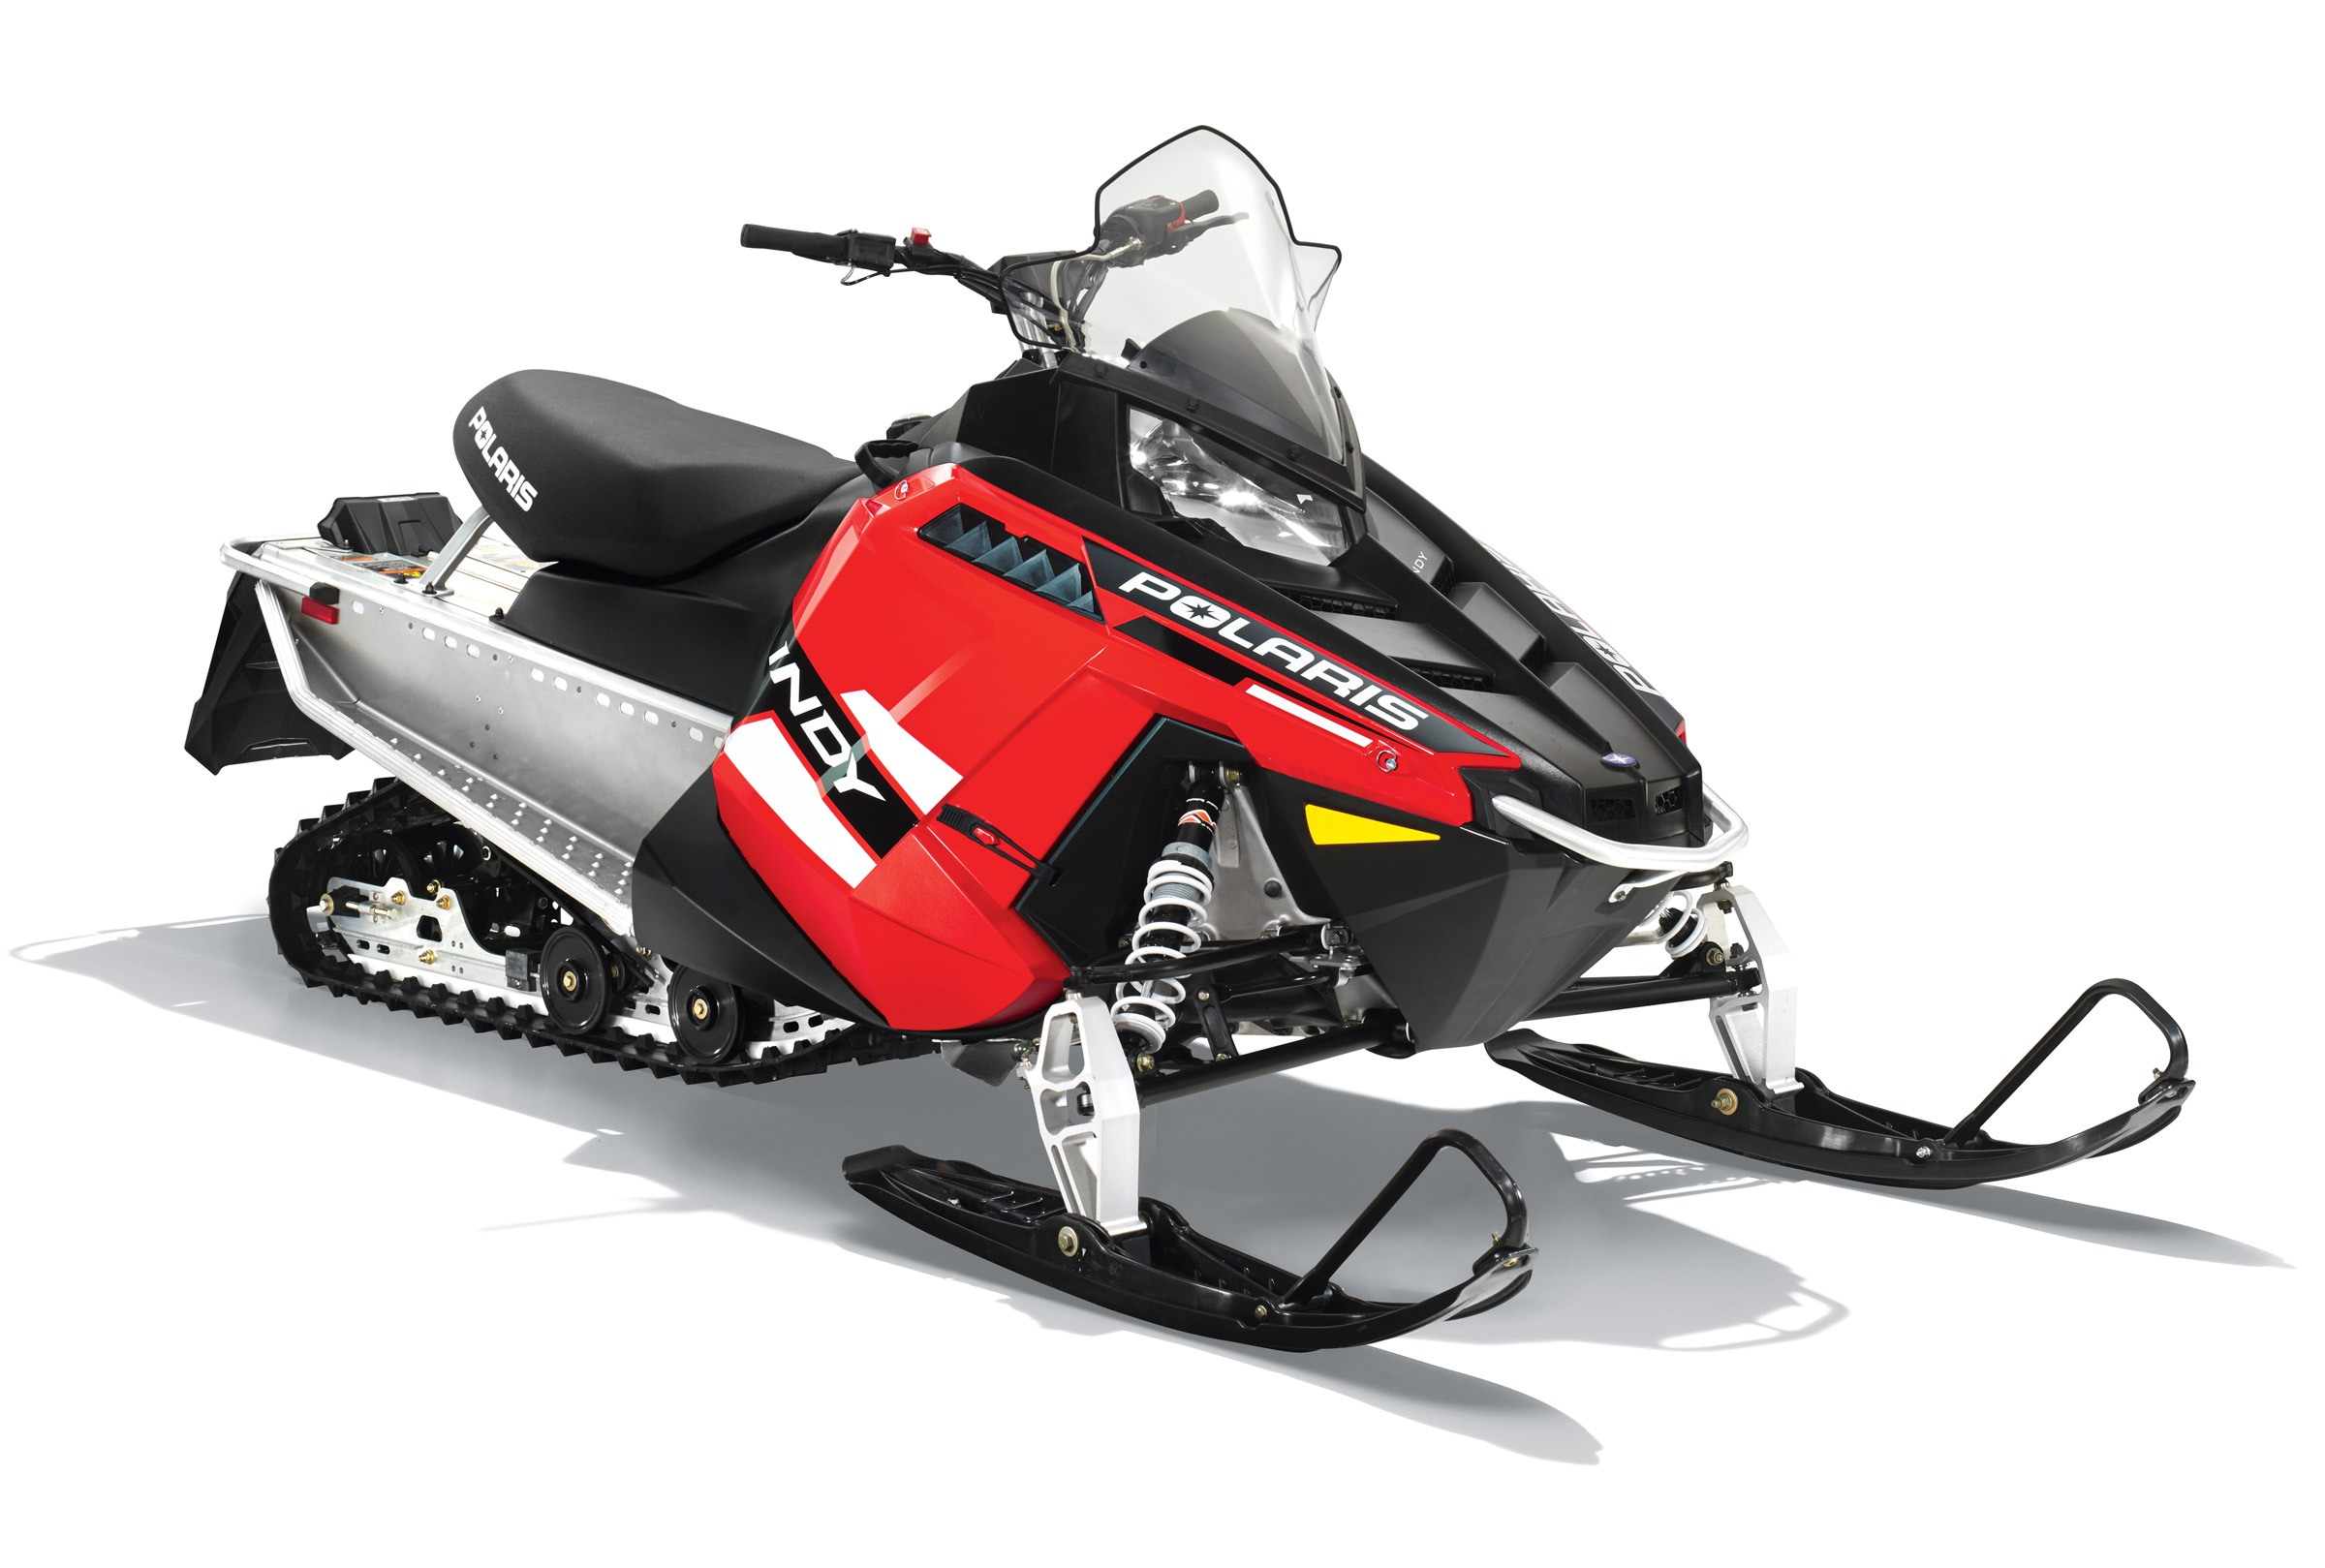 2016 Polaris 600 INDY in Algona, Iowa